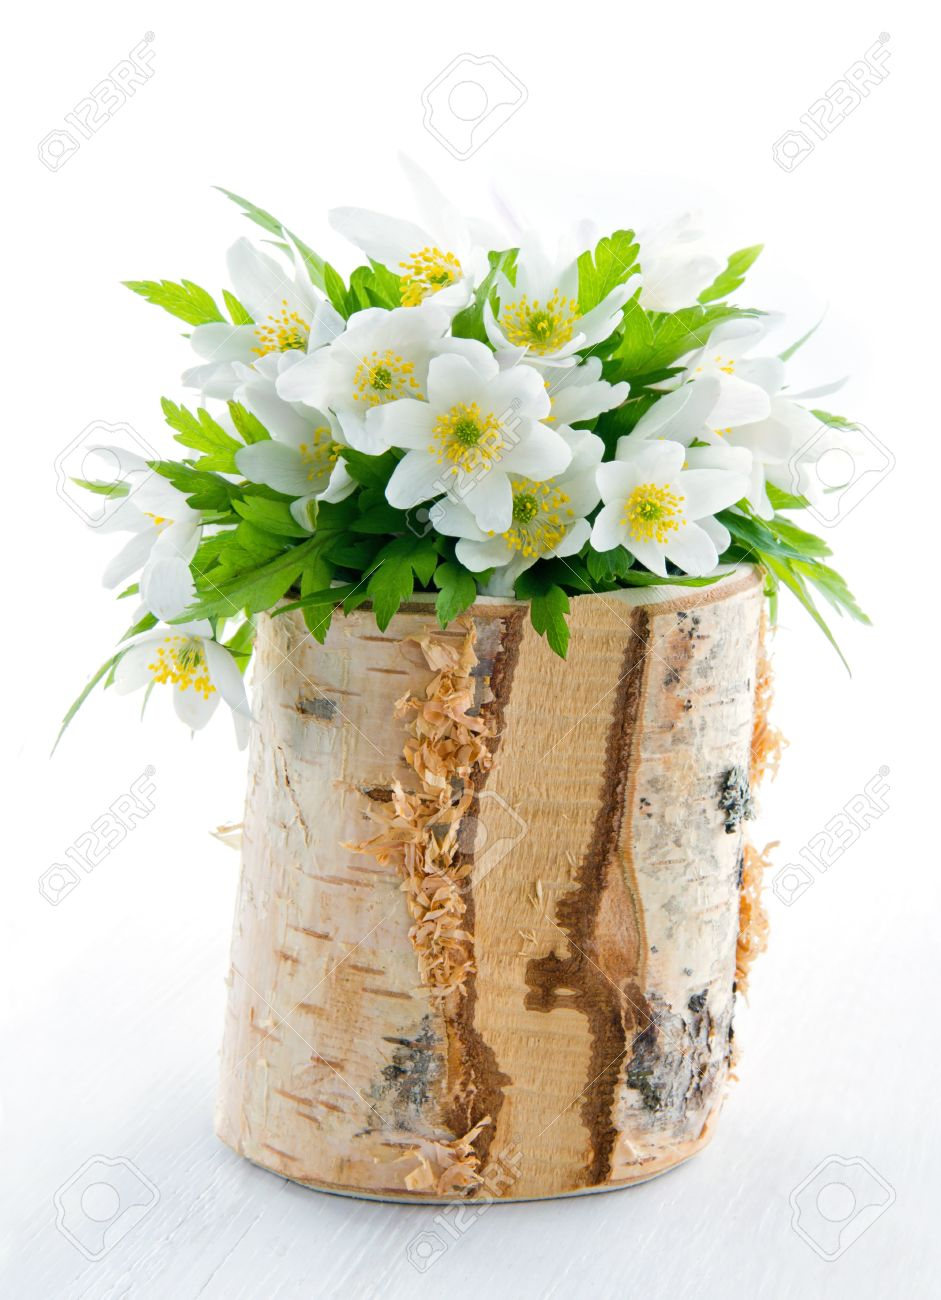 Bouquet Of White Spring Flowers, Wood Anemones, In A Rustic Wooden ...